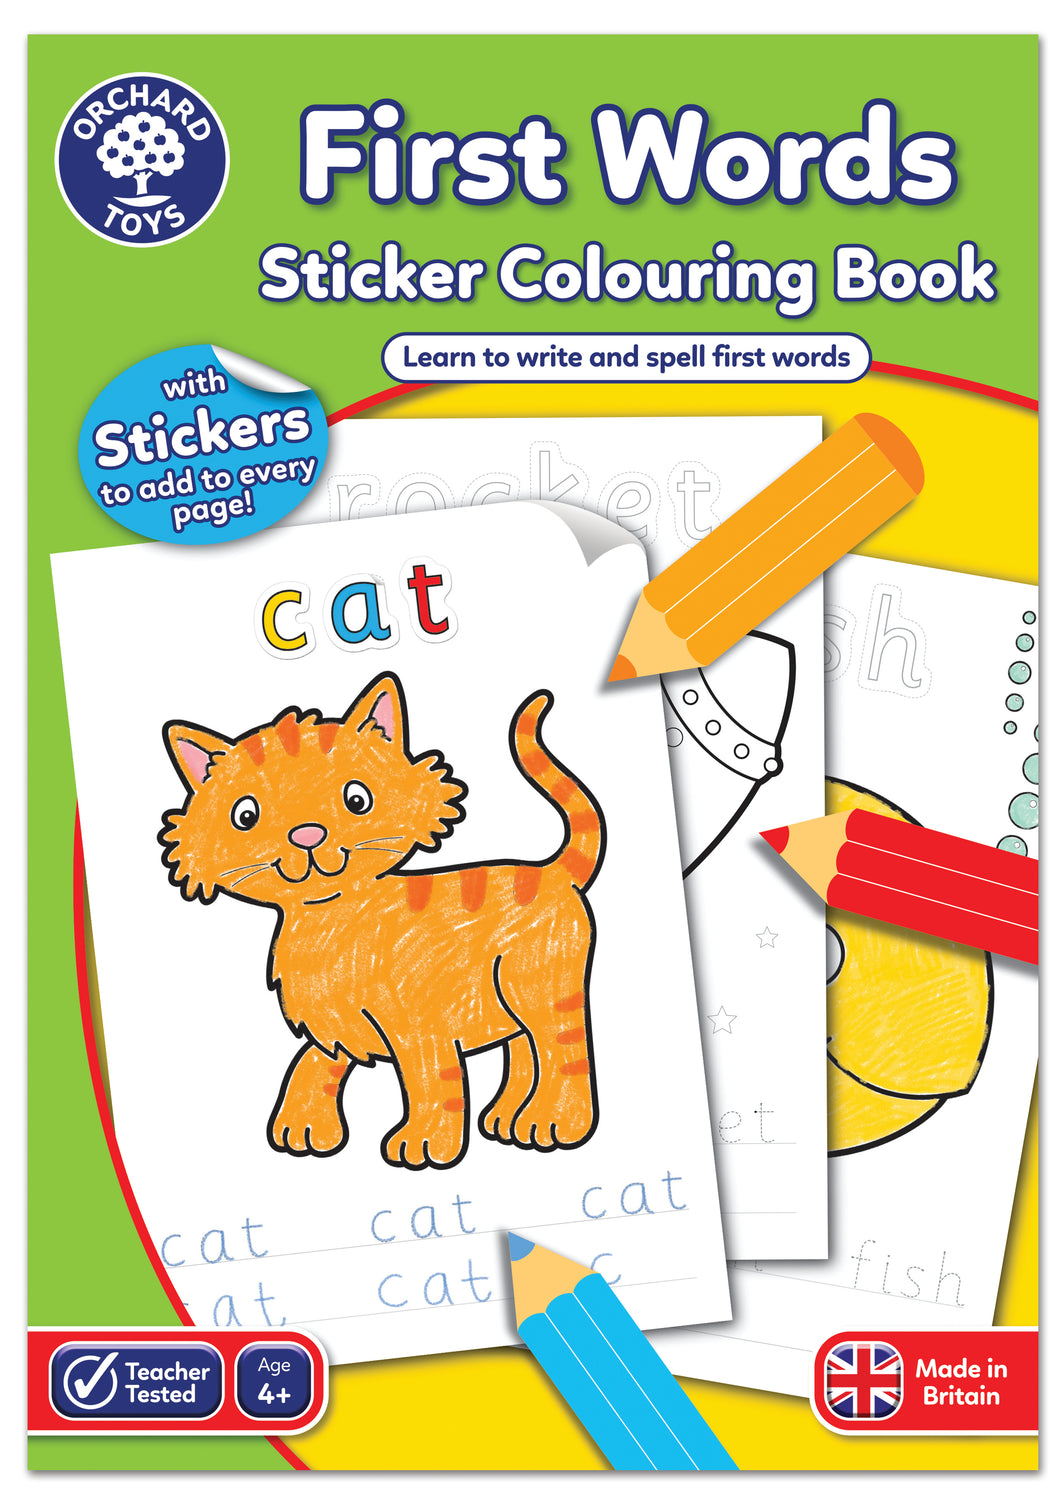 First Words Sticker Colouring Book